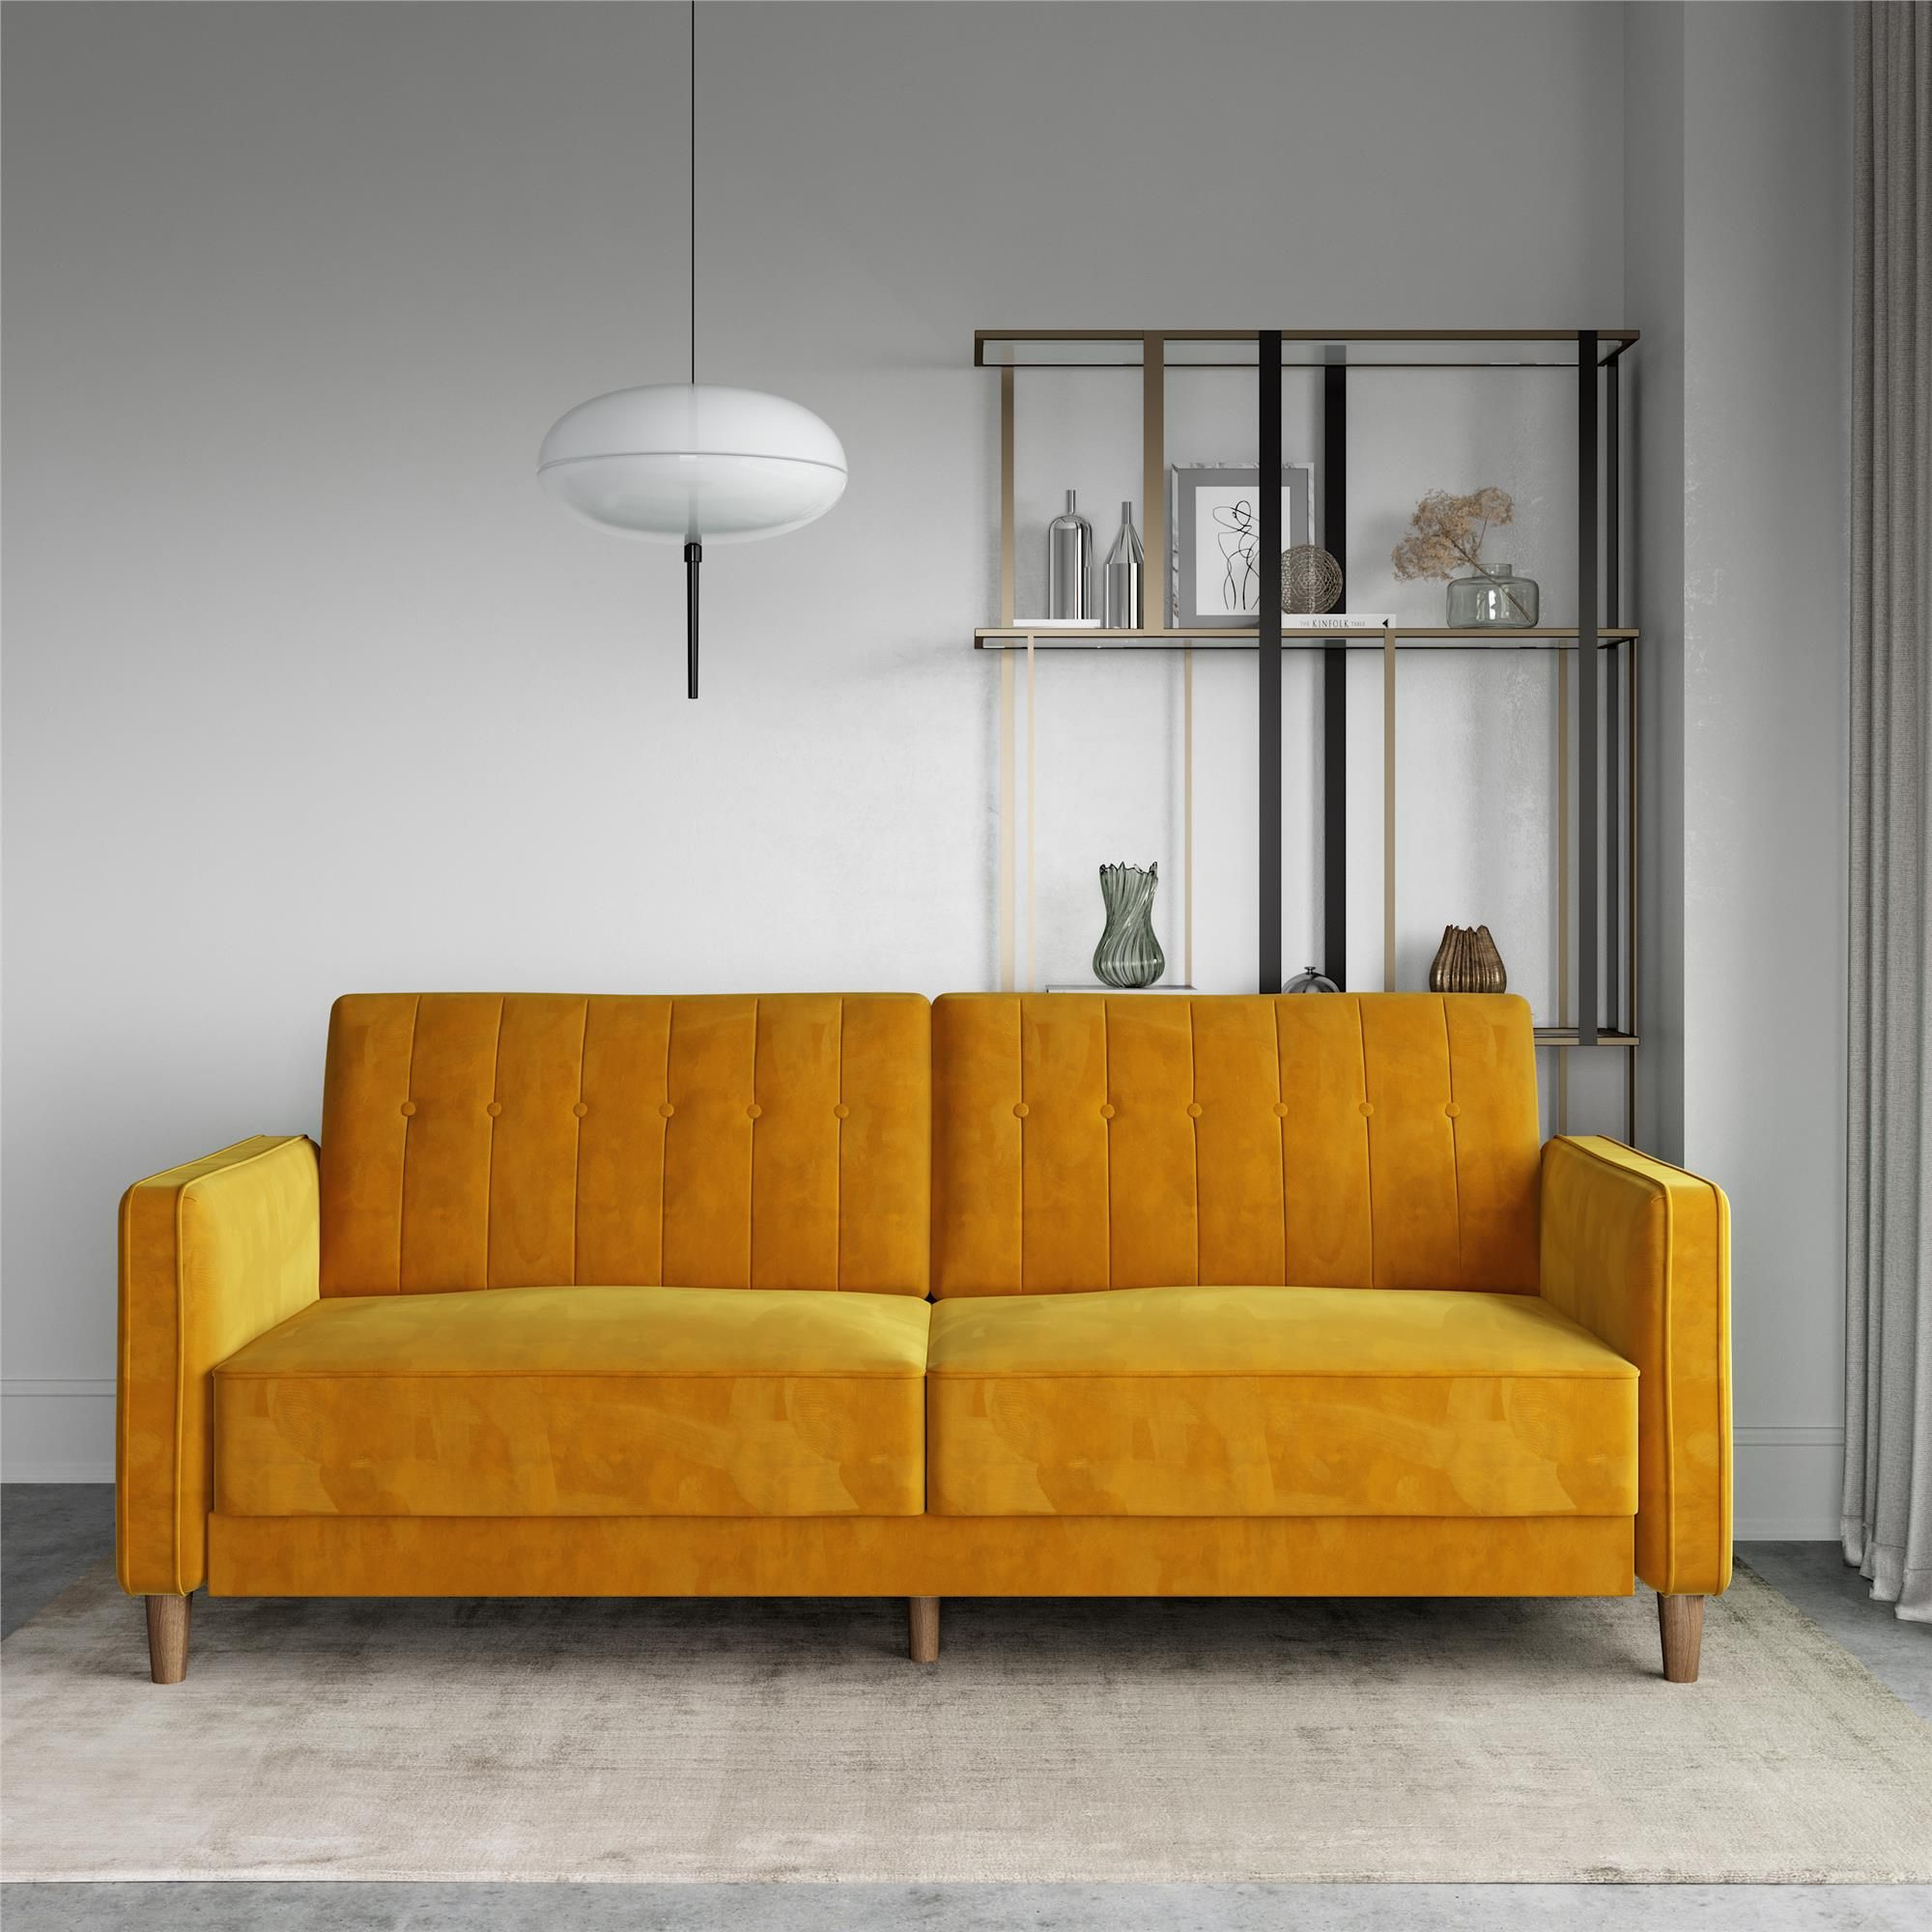 Better Homes And Gardens Futon Instructions